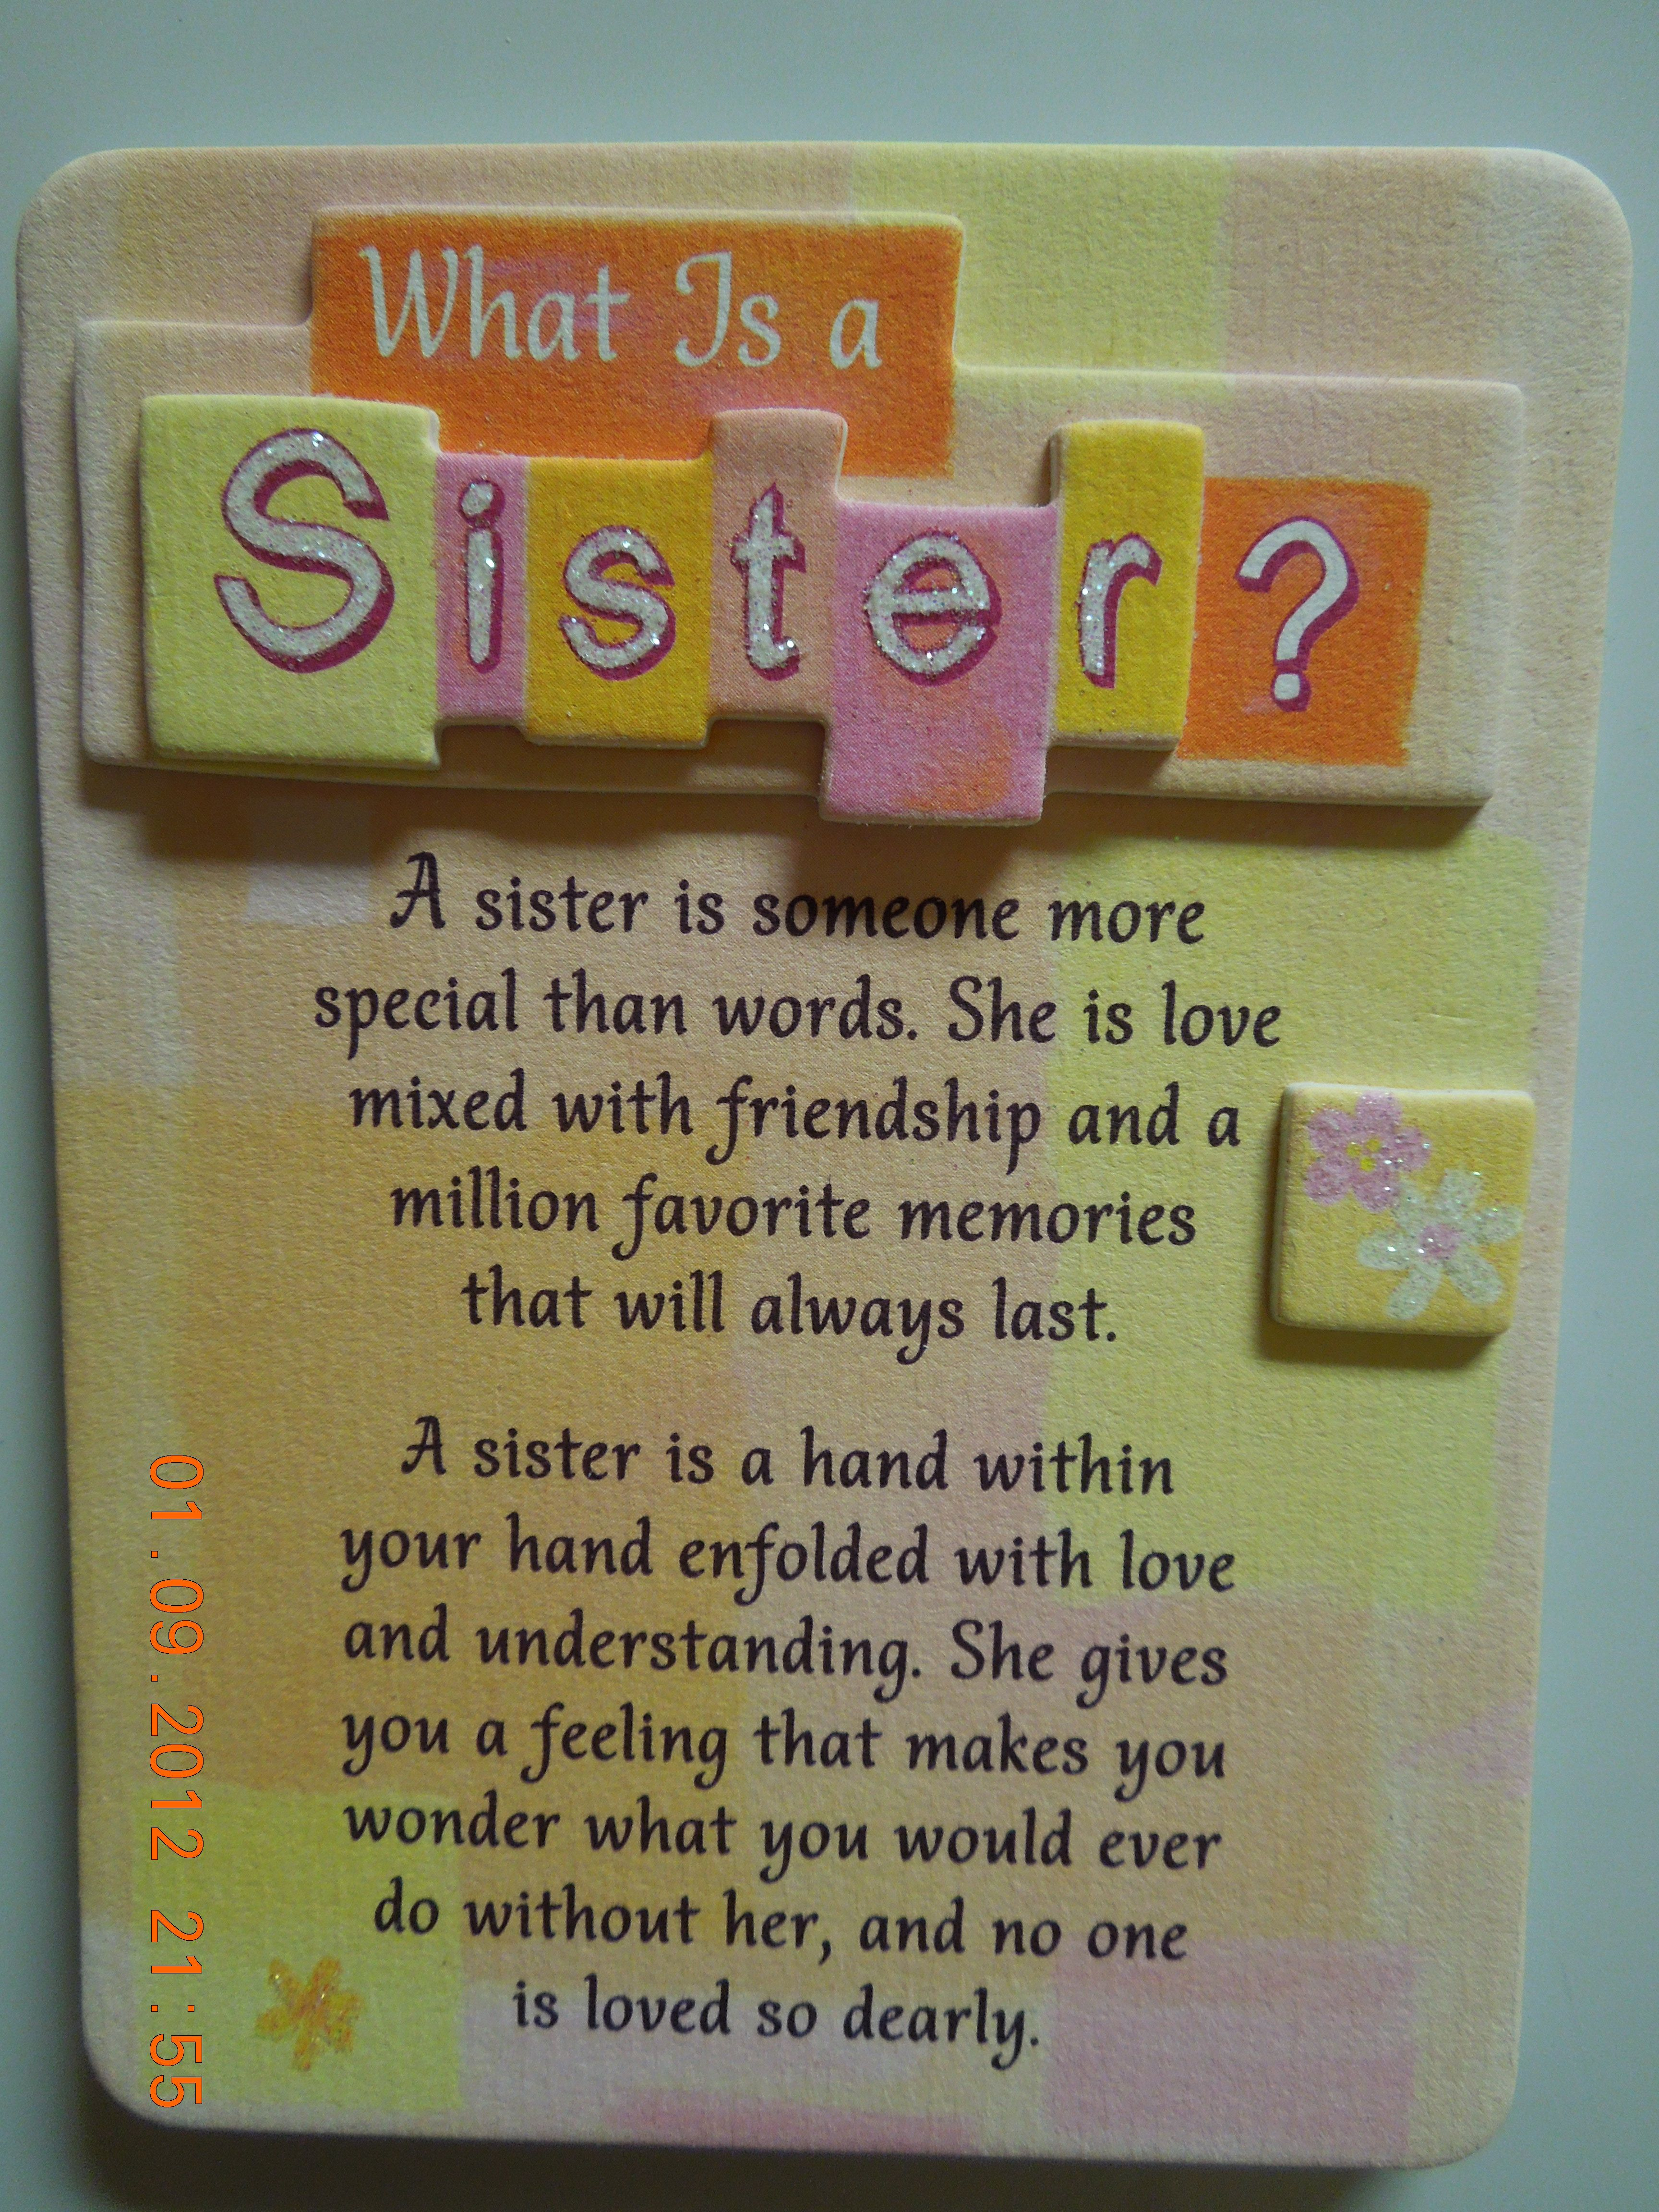 I love all my sisters very much those given to me by my mom and dad